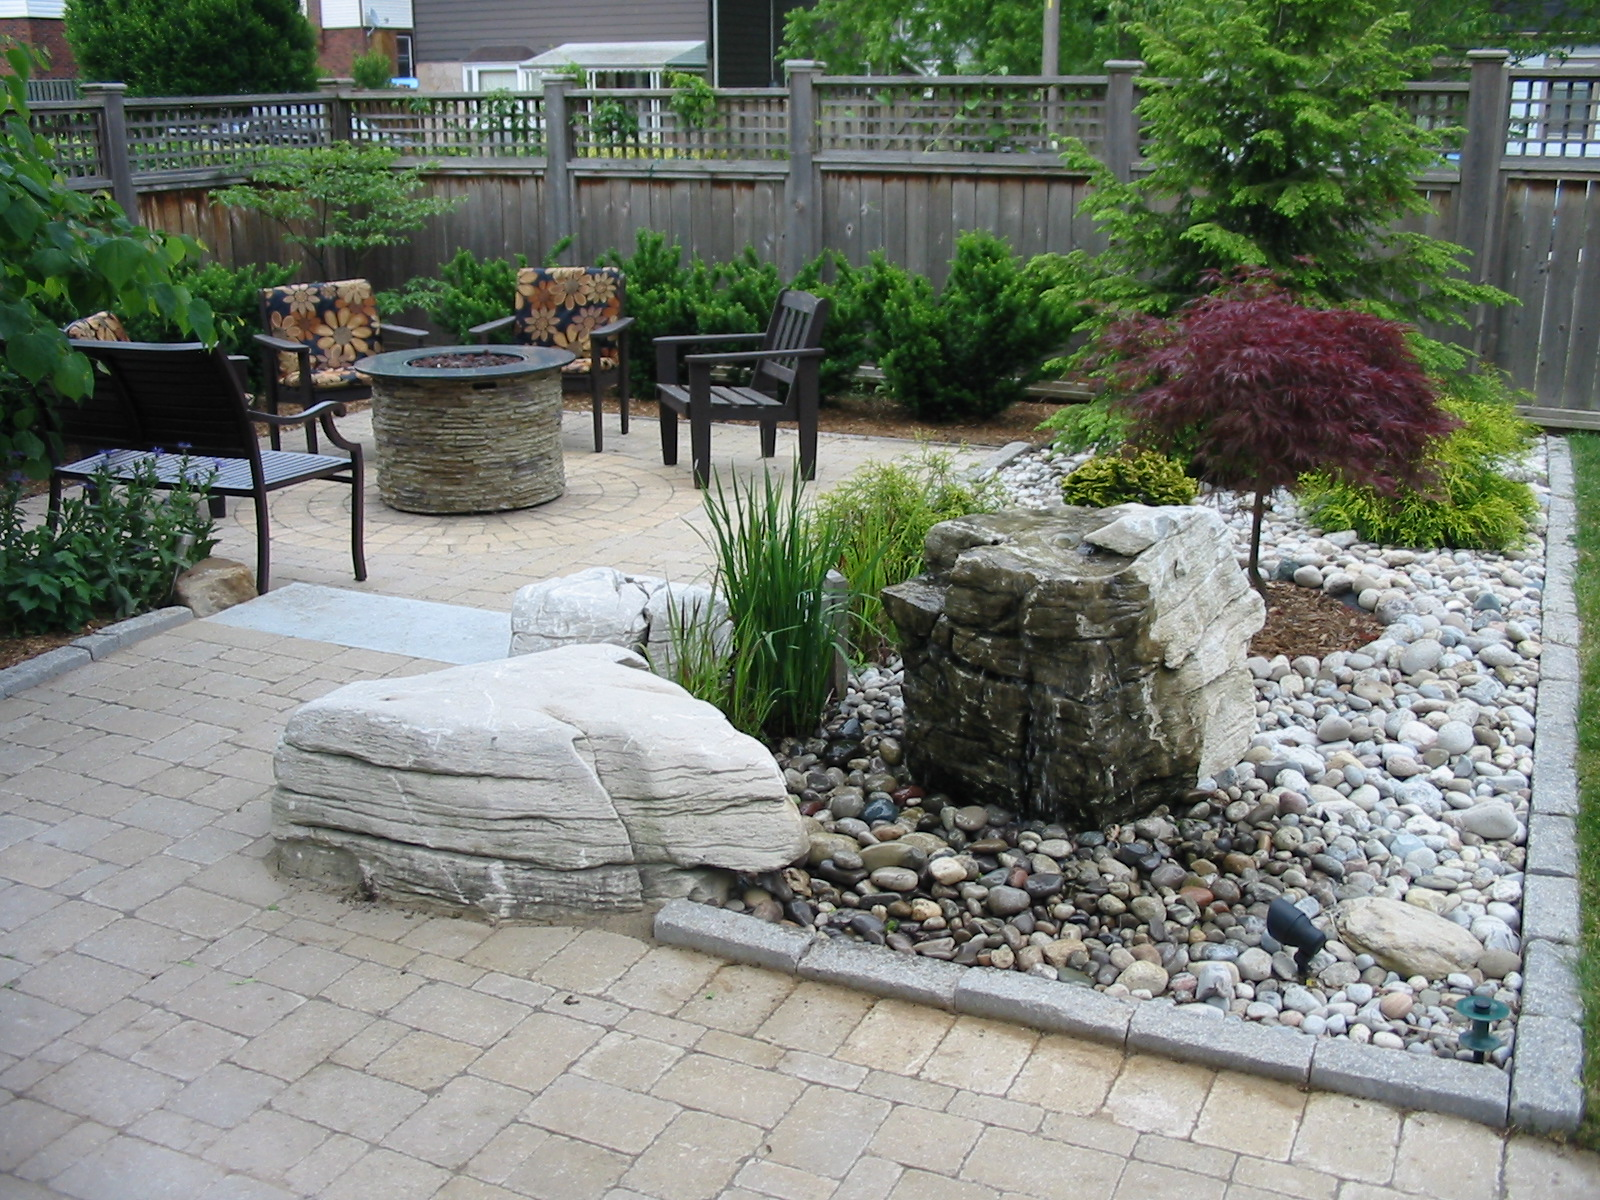 Bubbling rock in patio